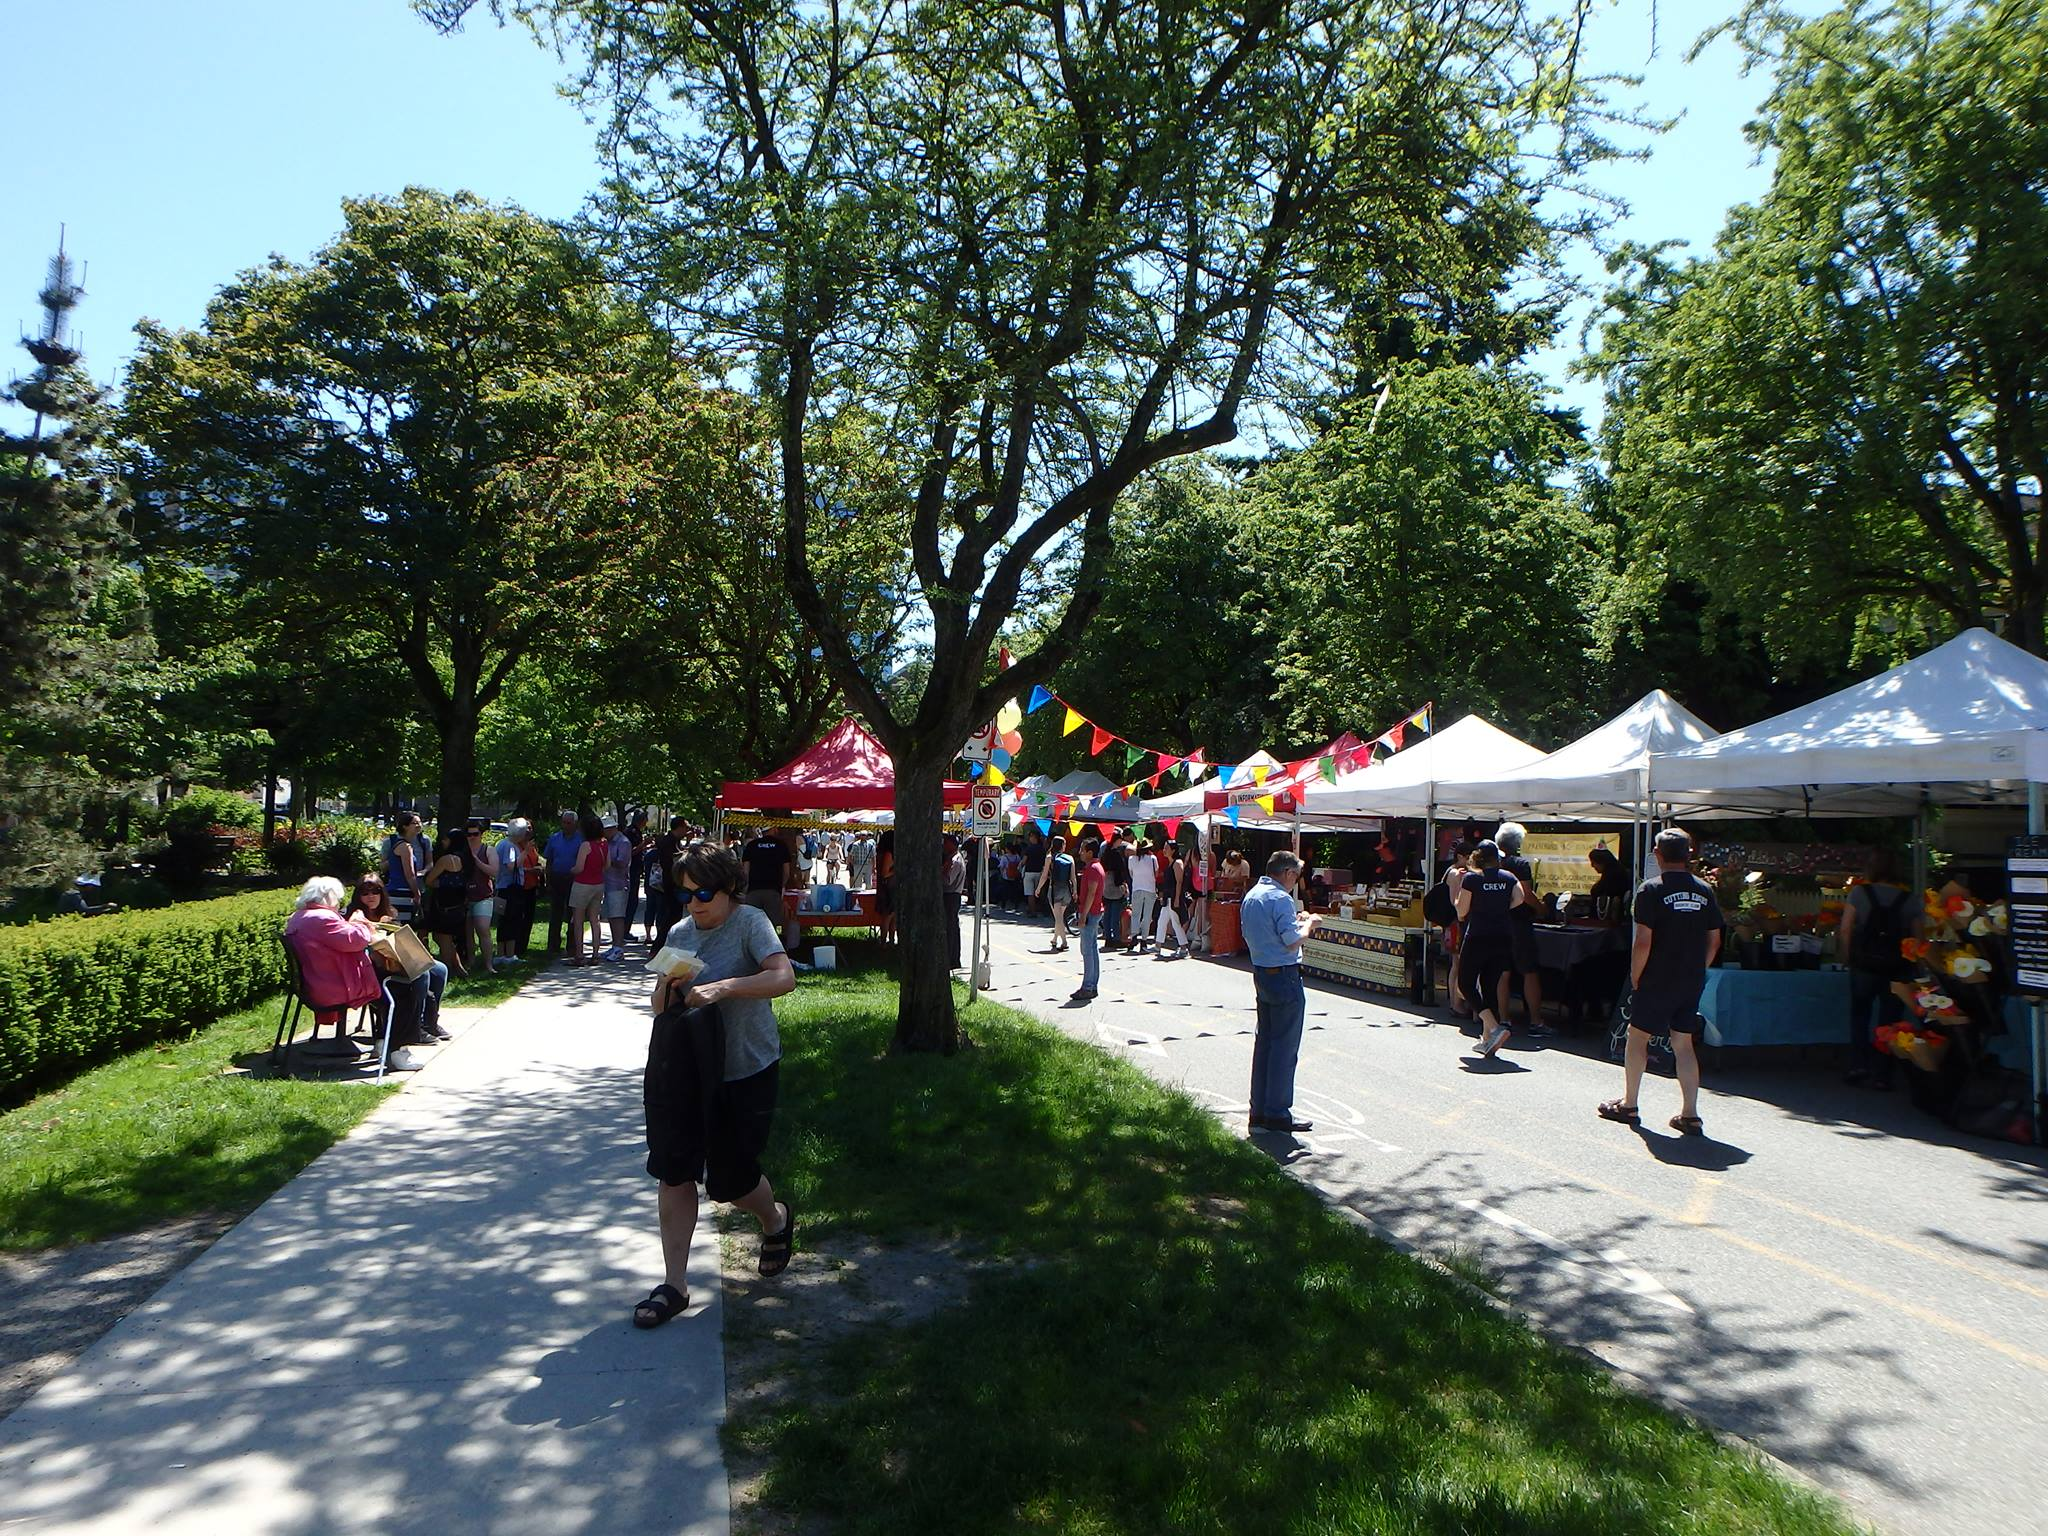 The West End Farmers Market returns for its 20th year. (Linda Lawson Photo)